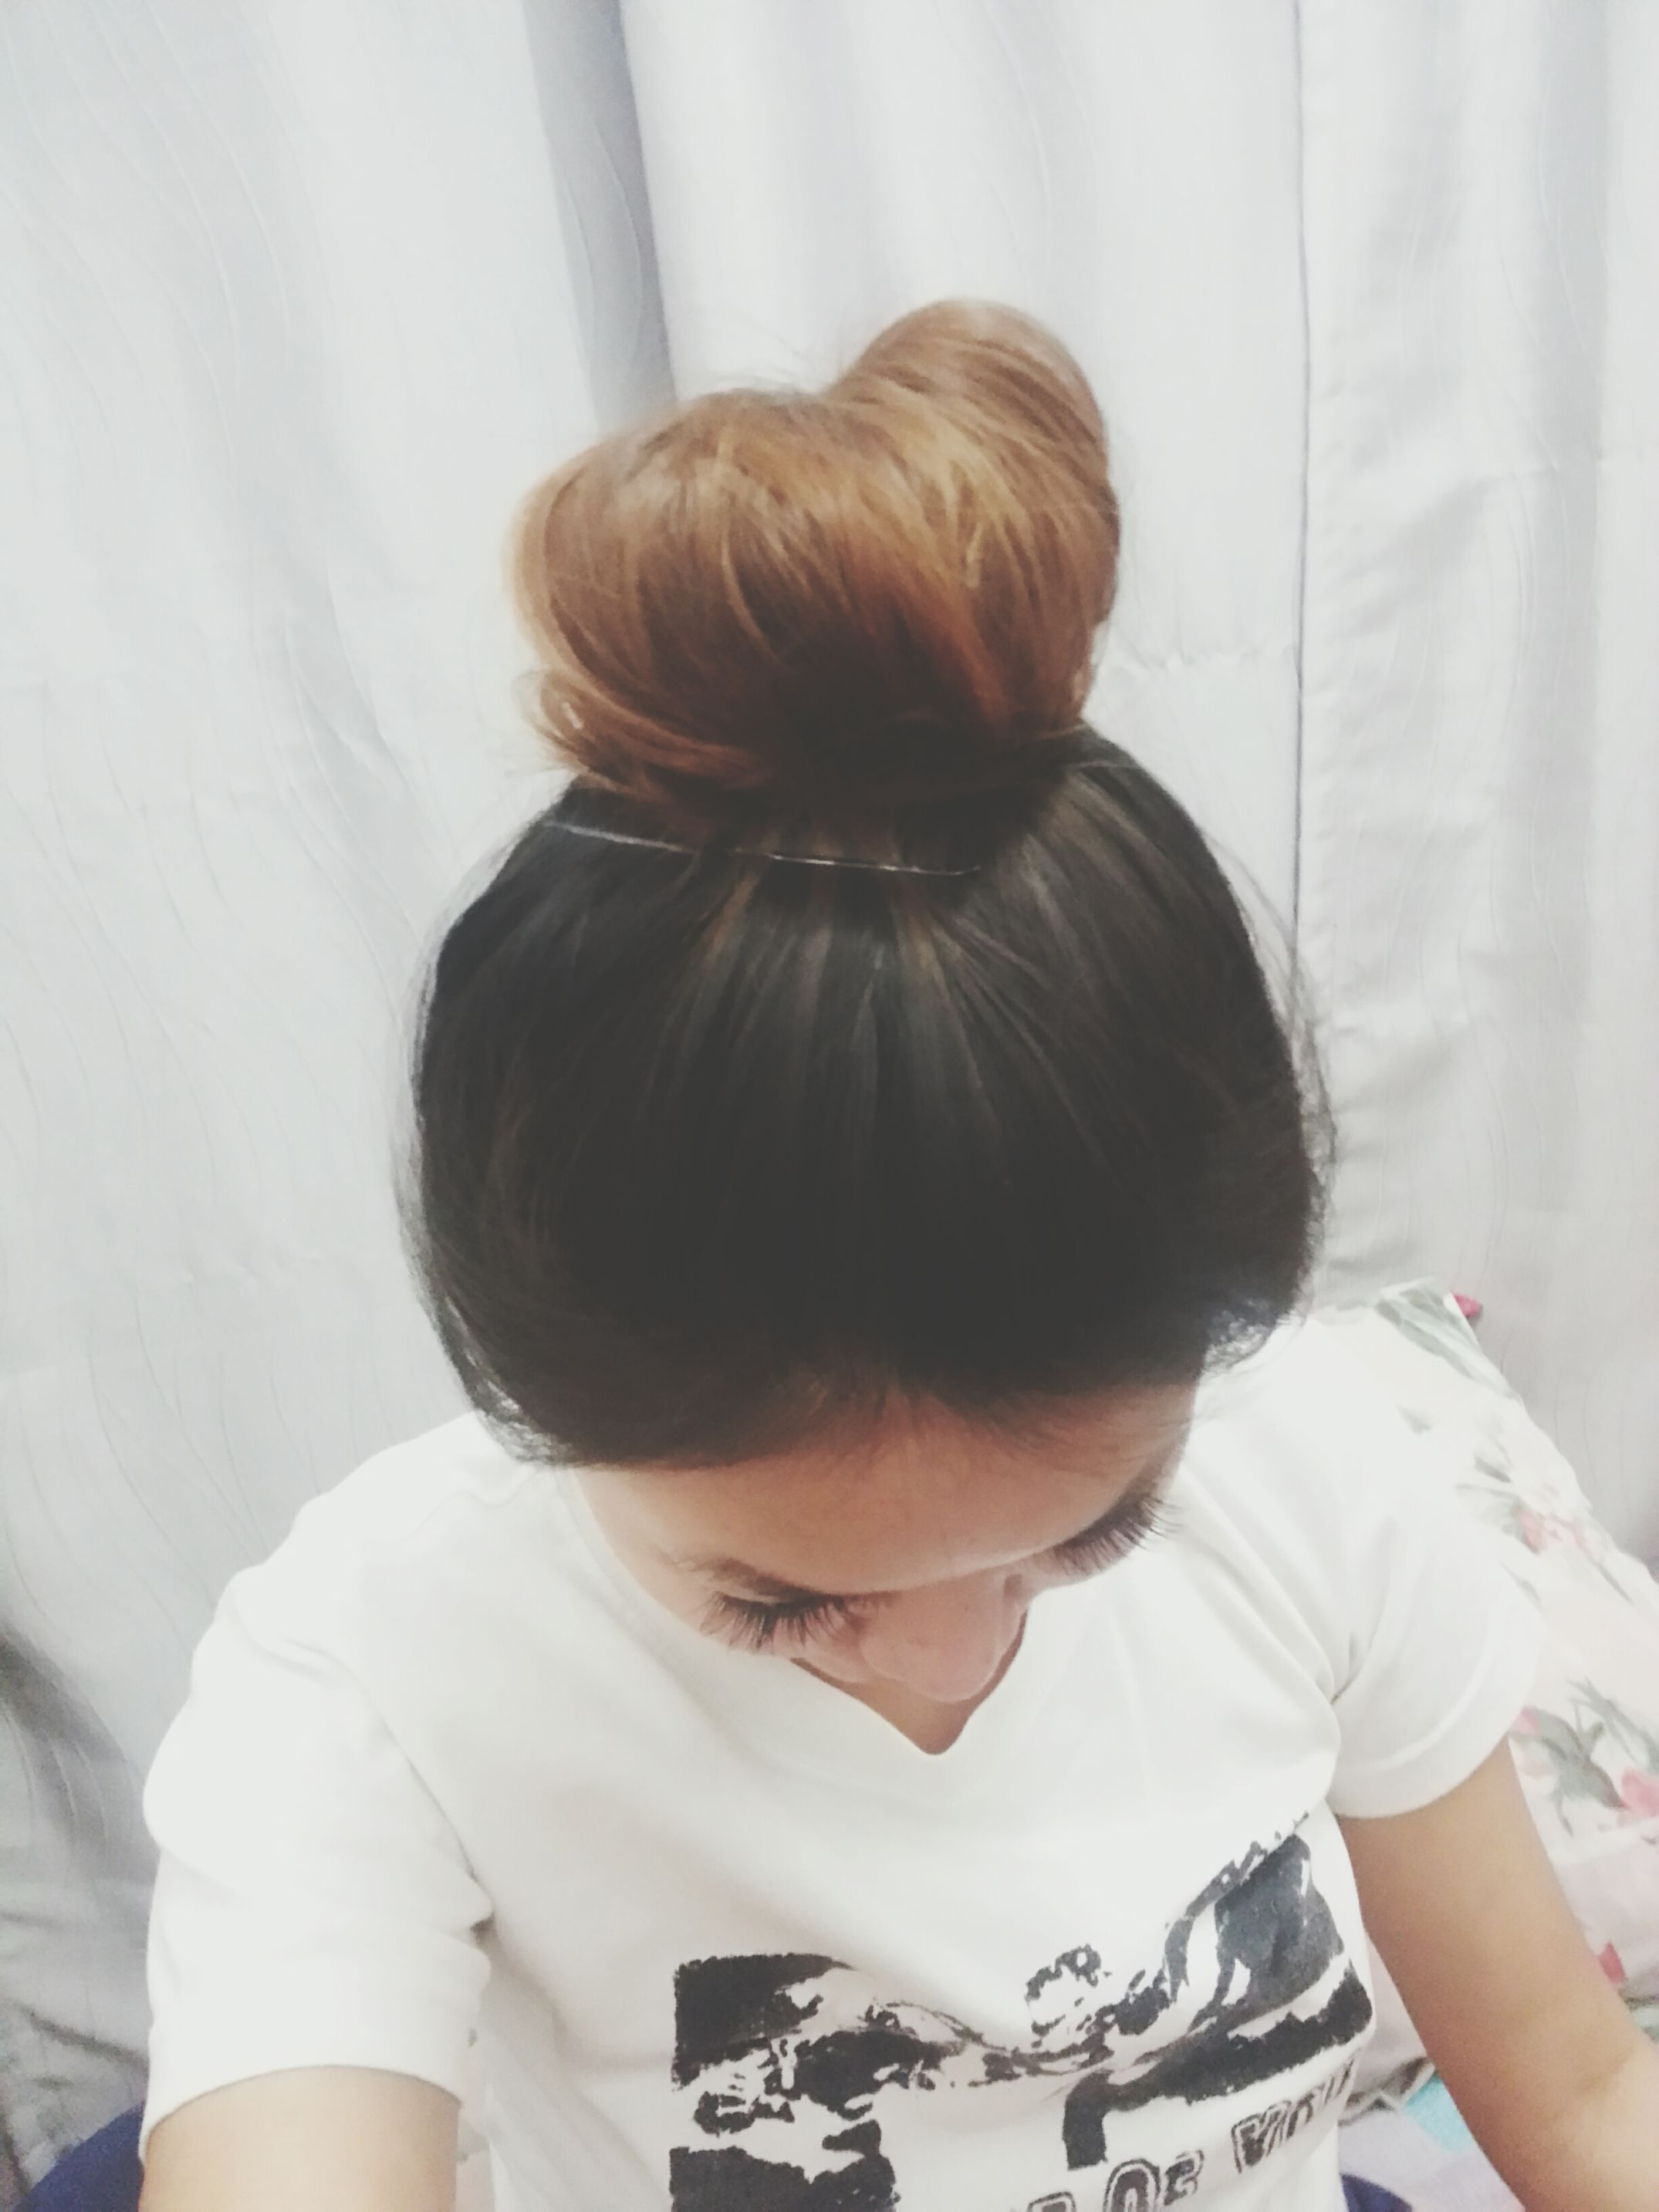 Messy hair it is! Lazy #cute #hairbun #chillin .♡